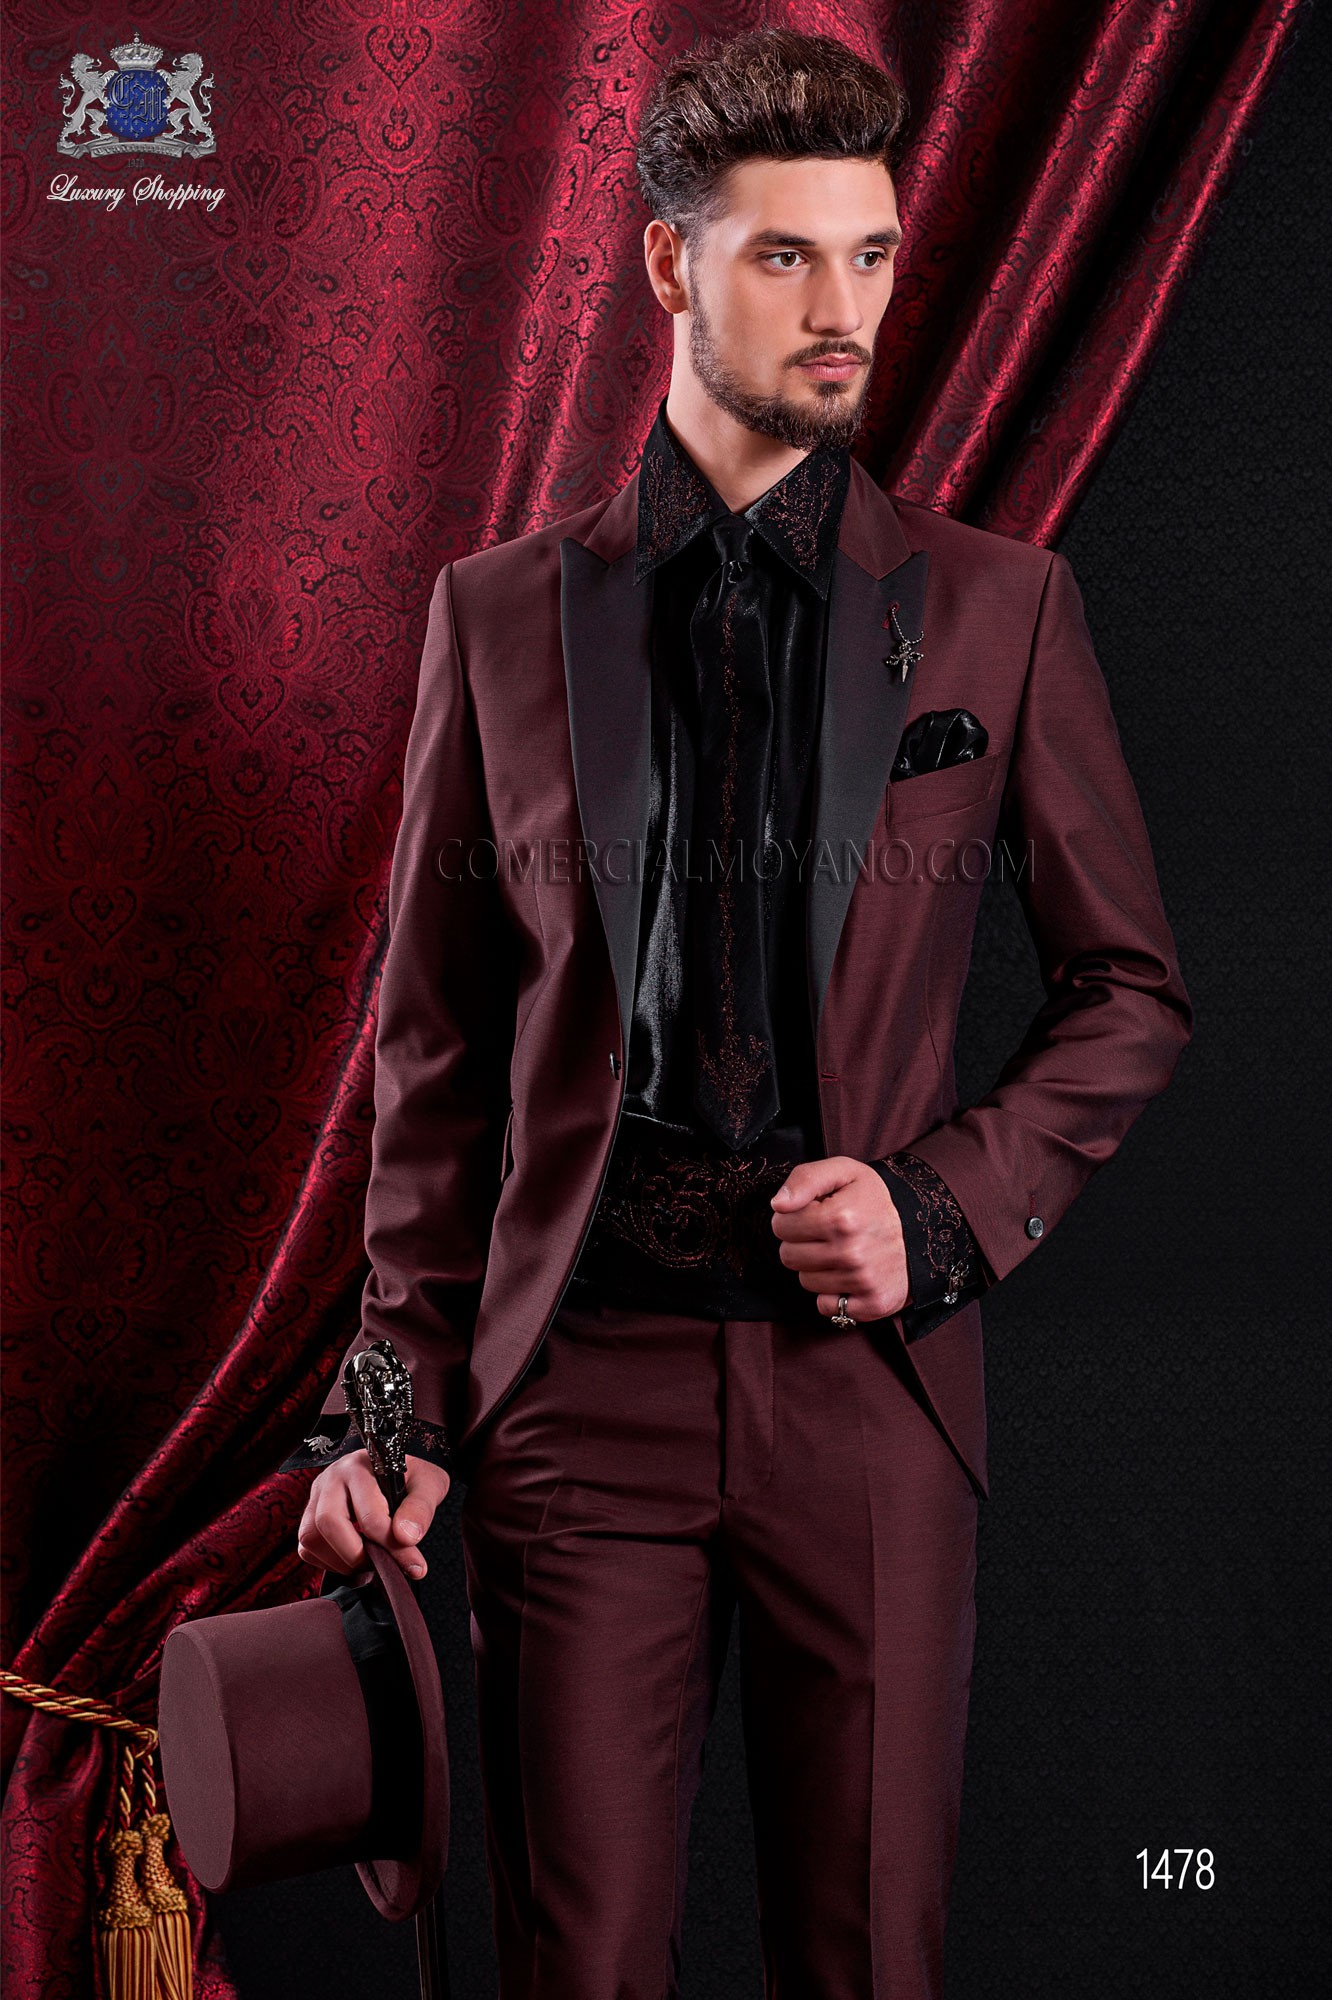 Maroon suit groom fashion, Italian slim fit Ottavio Nuccio Gala